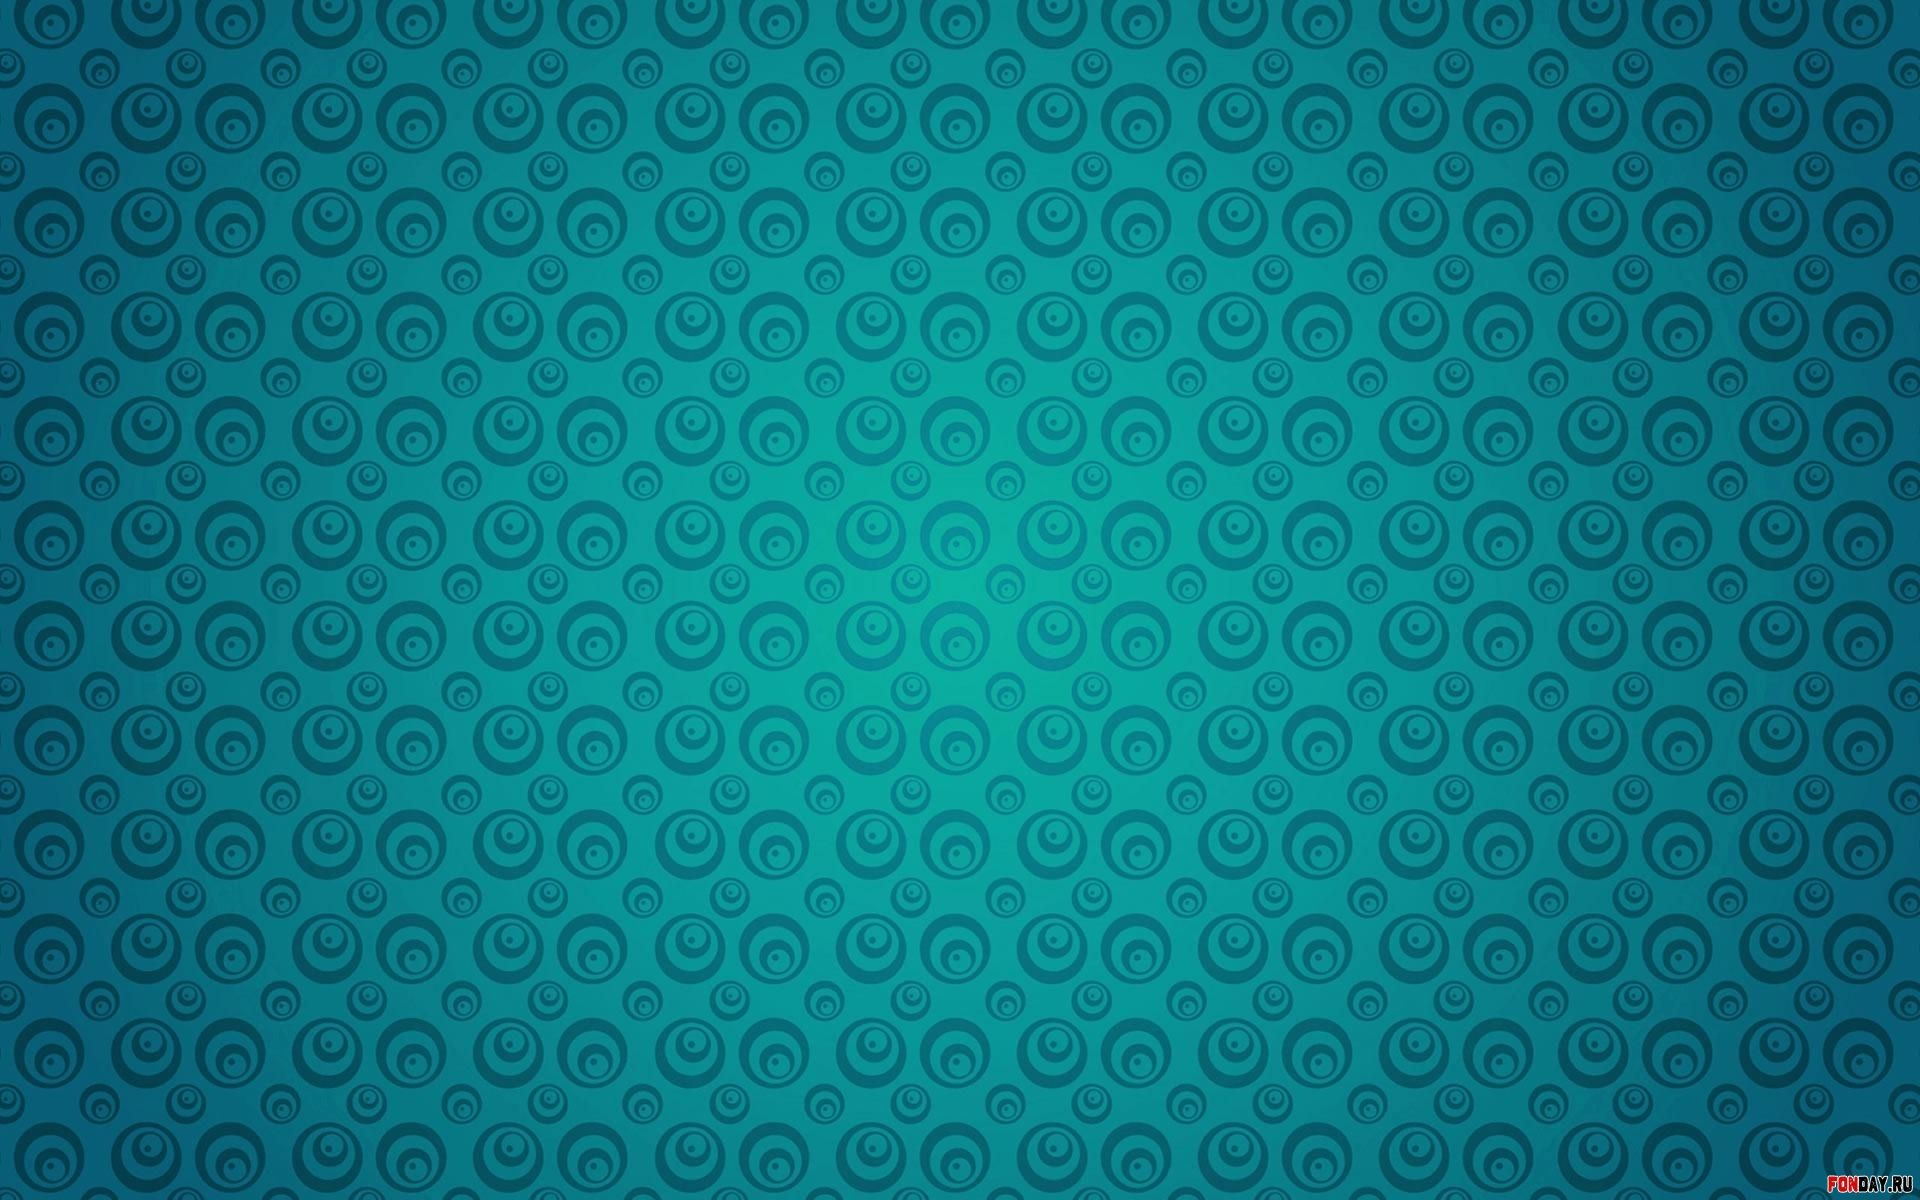 Free Grey Seamless Patterns For Website Background.